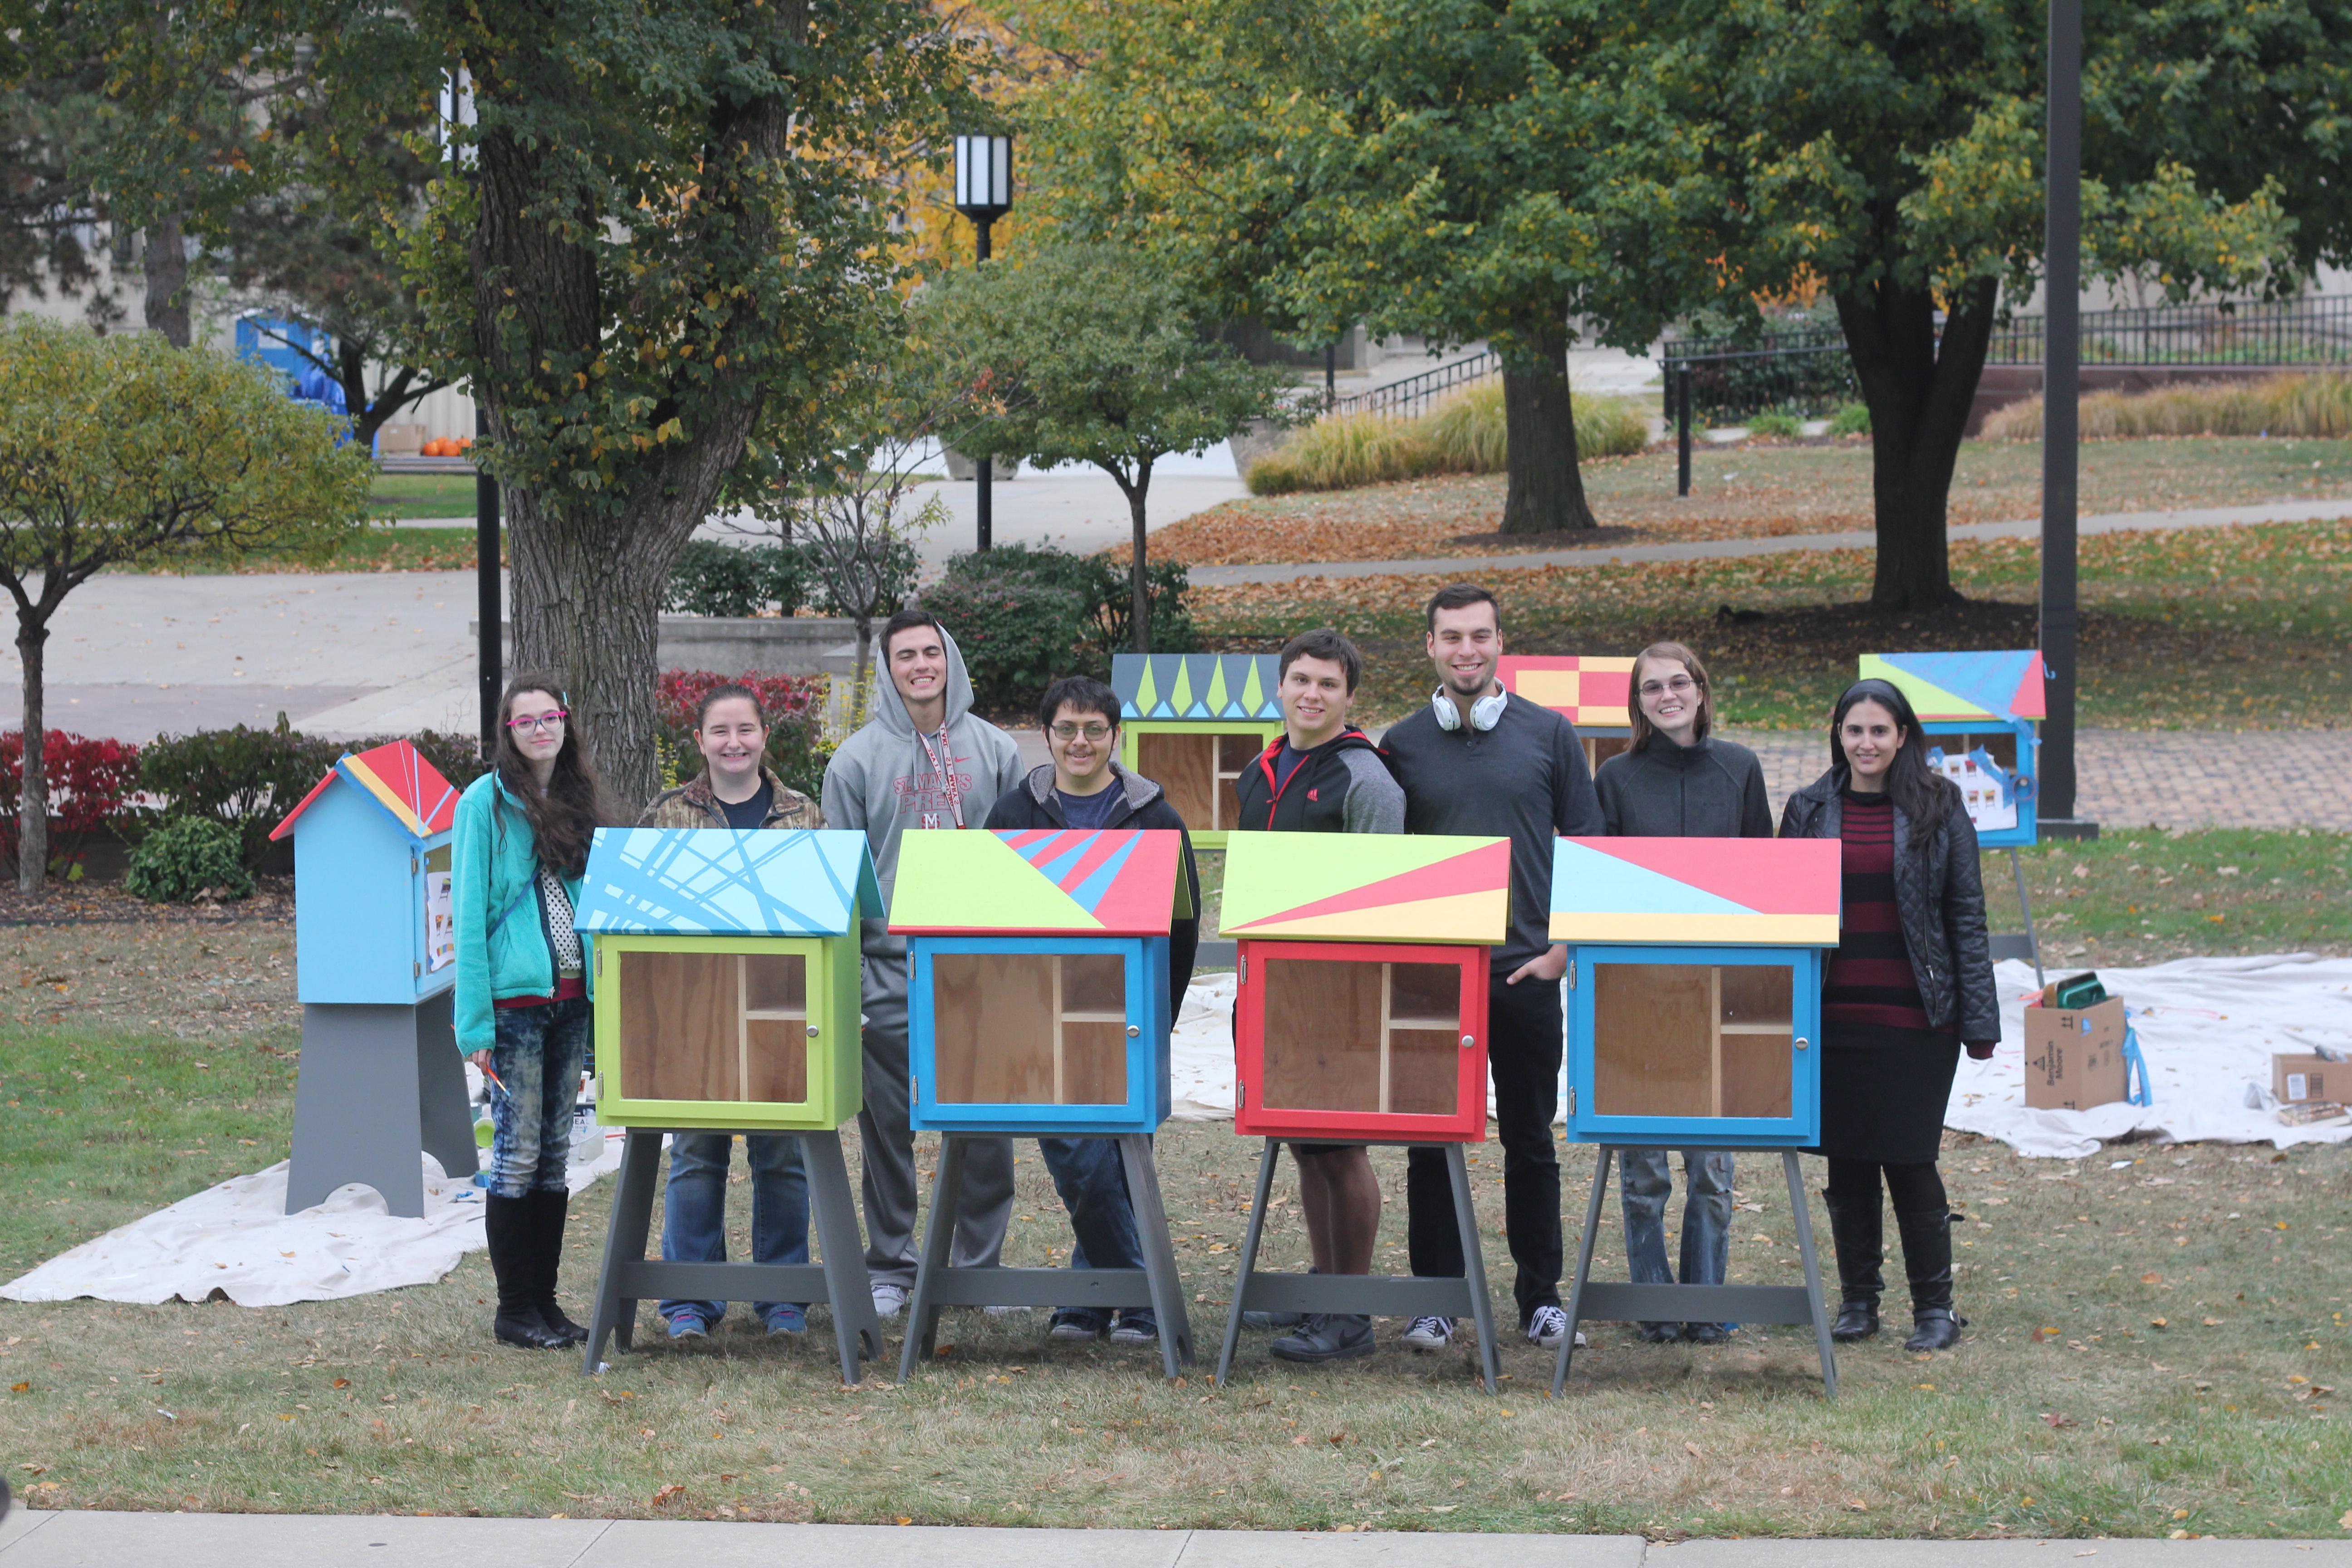 School of Architecture students with some of the Little Free Libraries Rx for Reading will be distributing throughout the city.